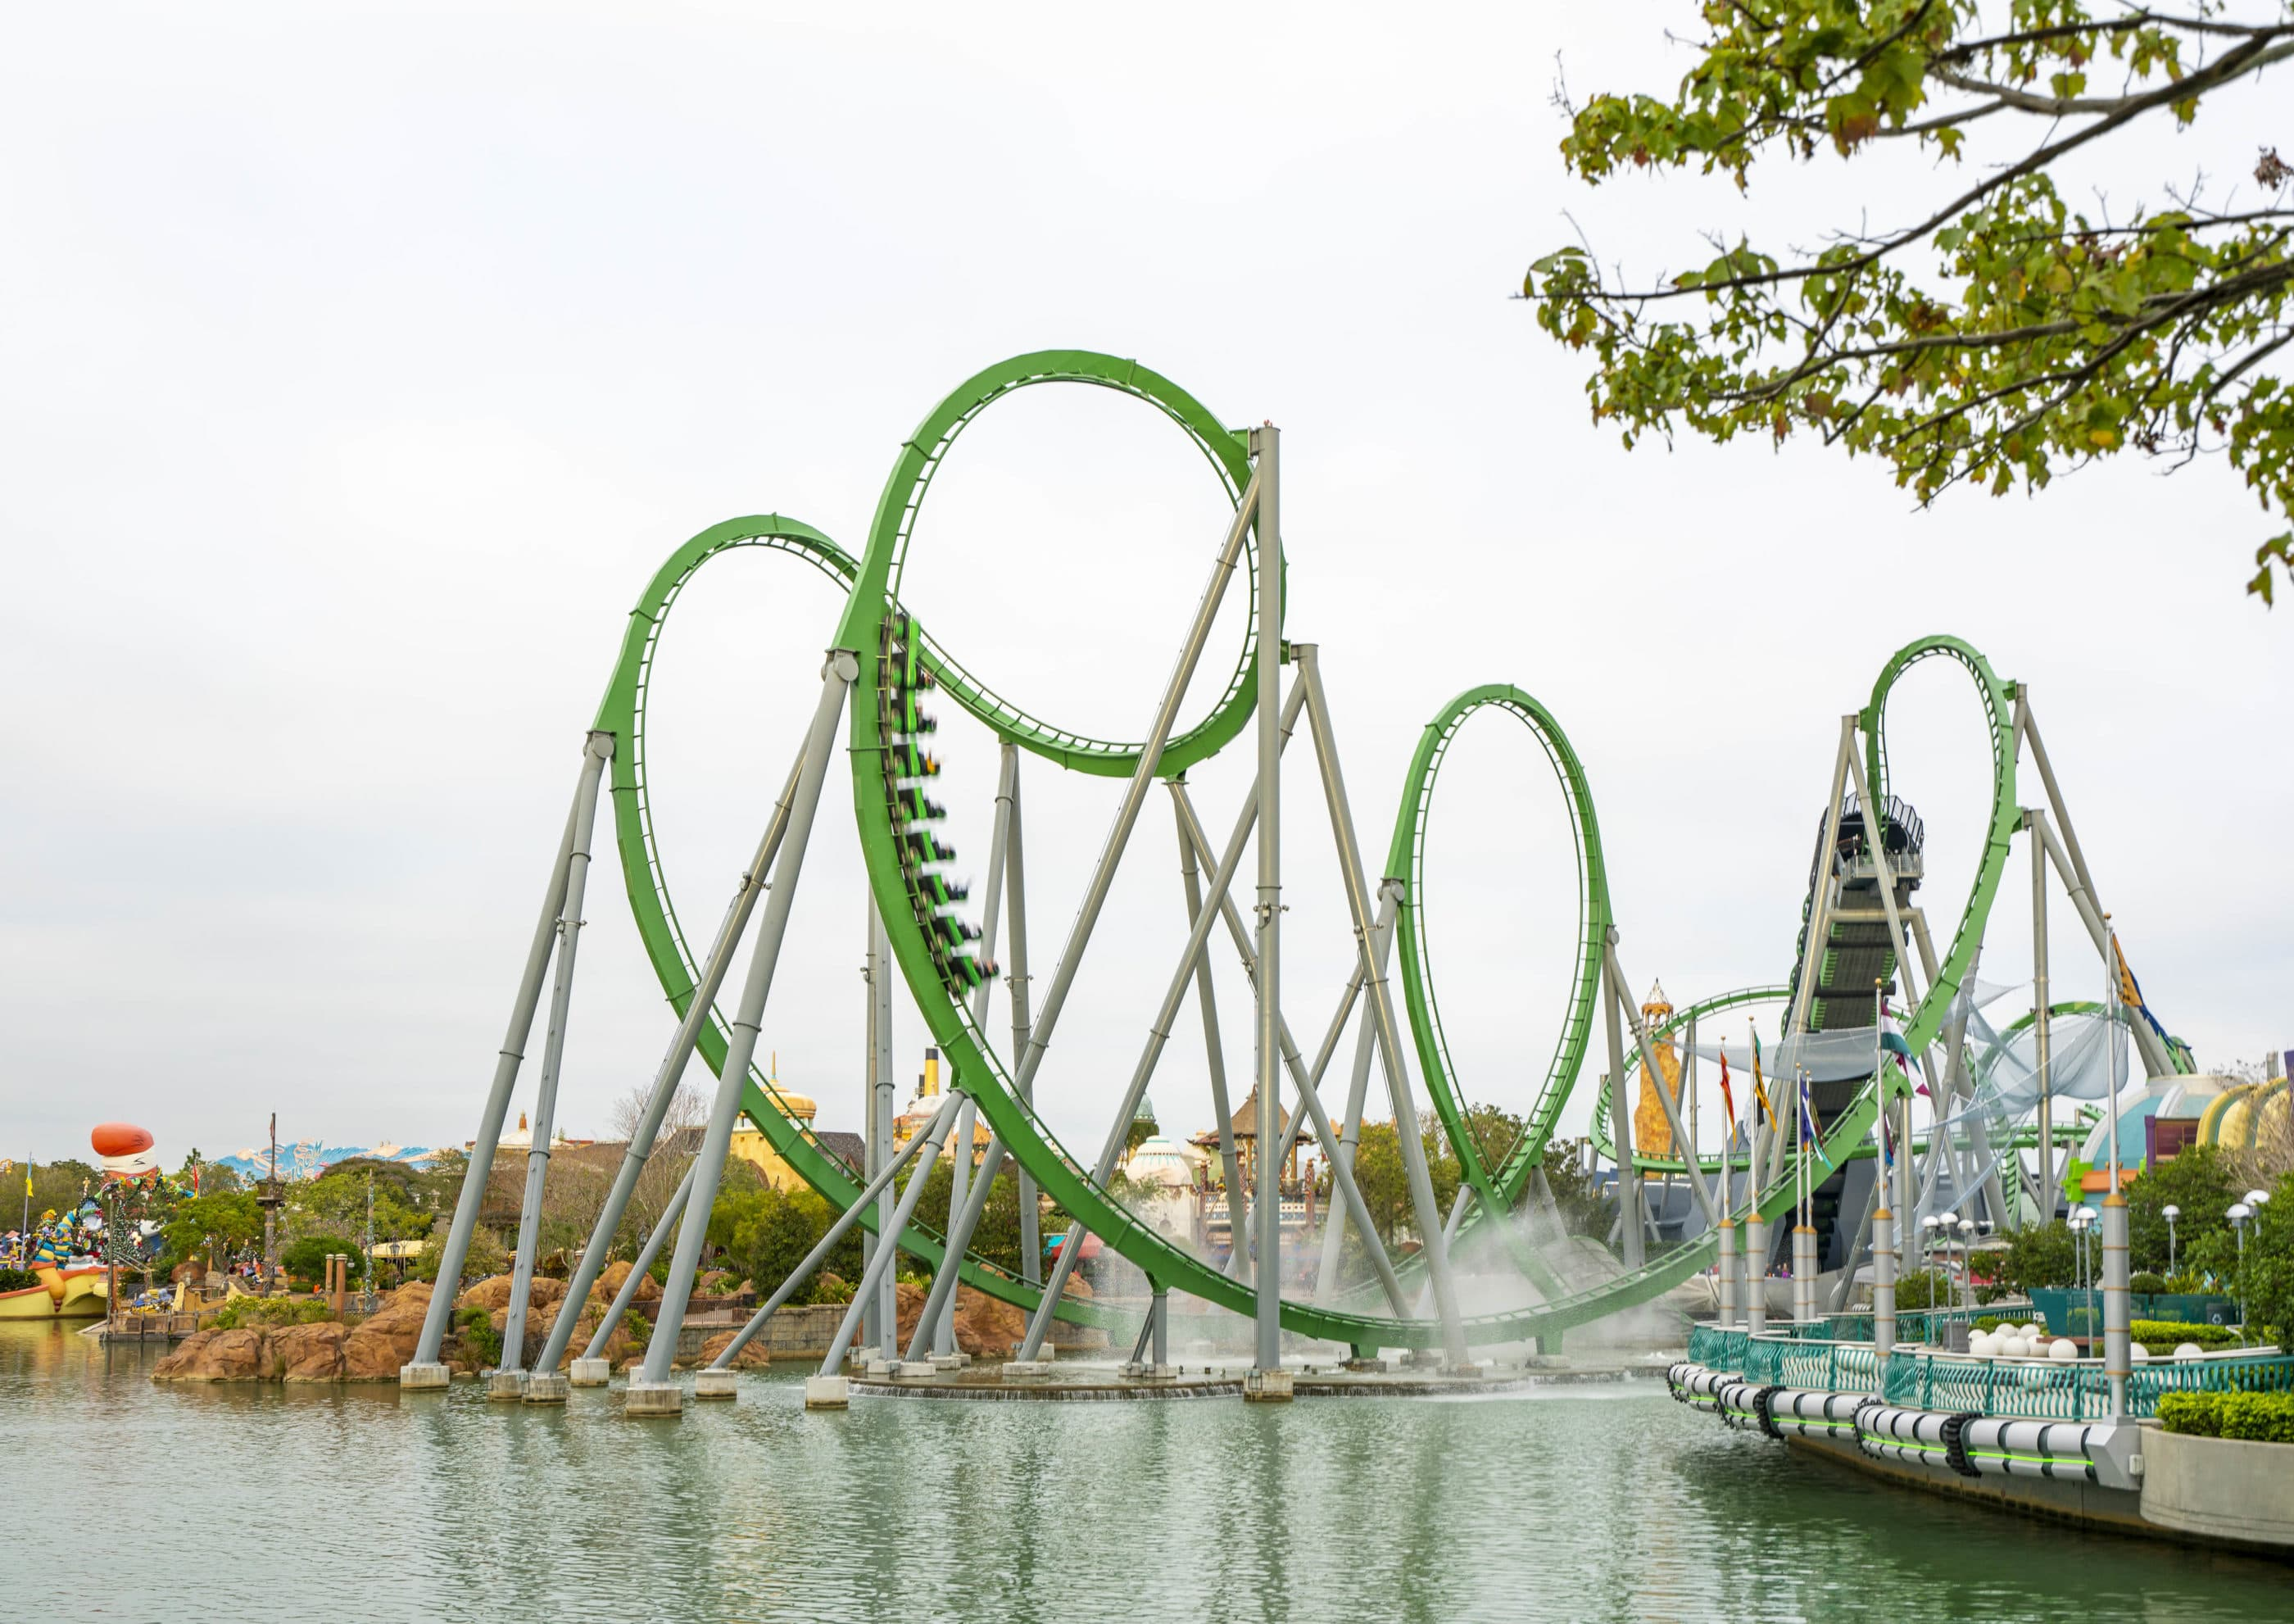 The Hulk roller coaster on its green track at Universal Islands of Adventure in Orlando.